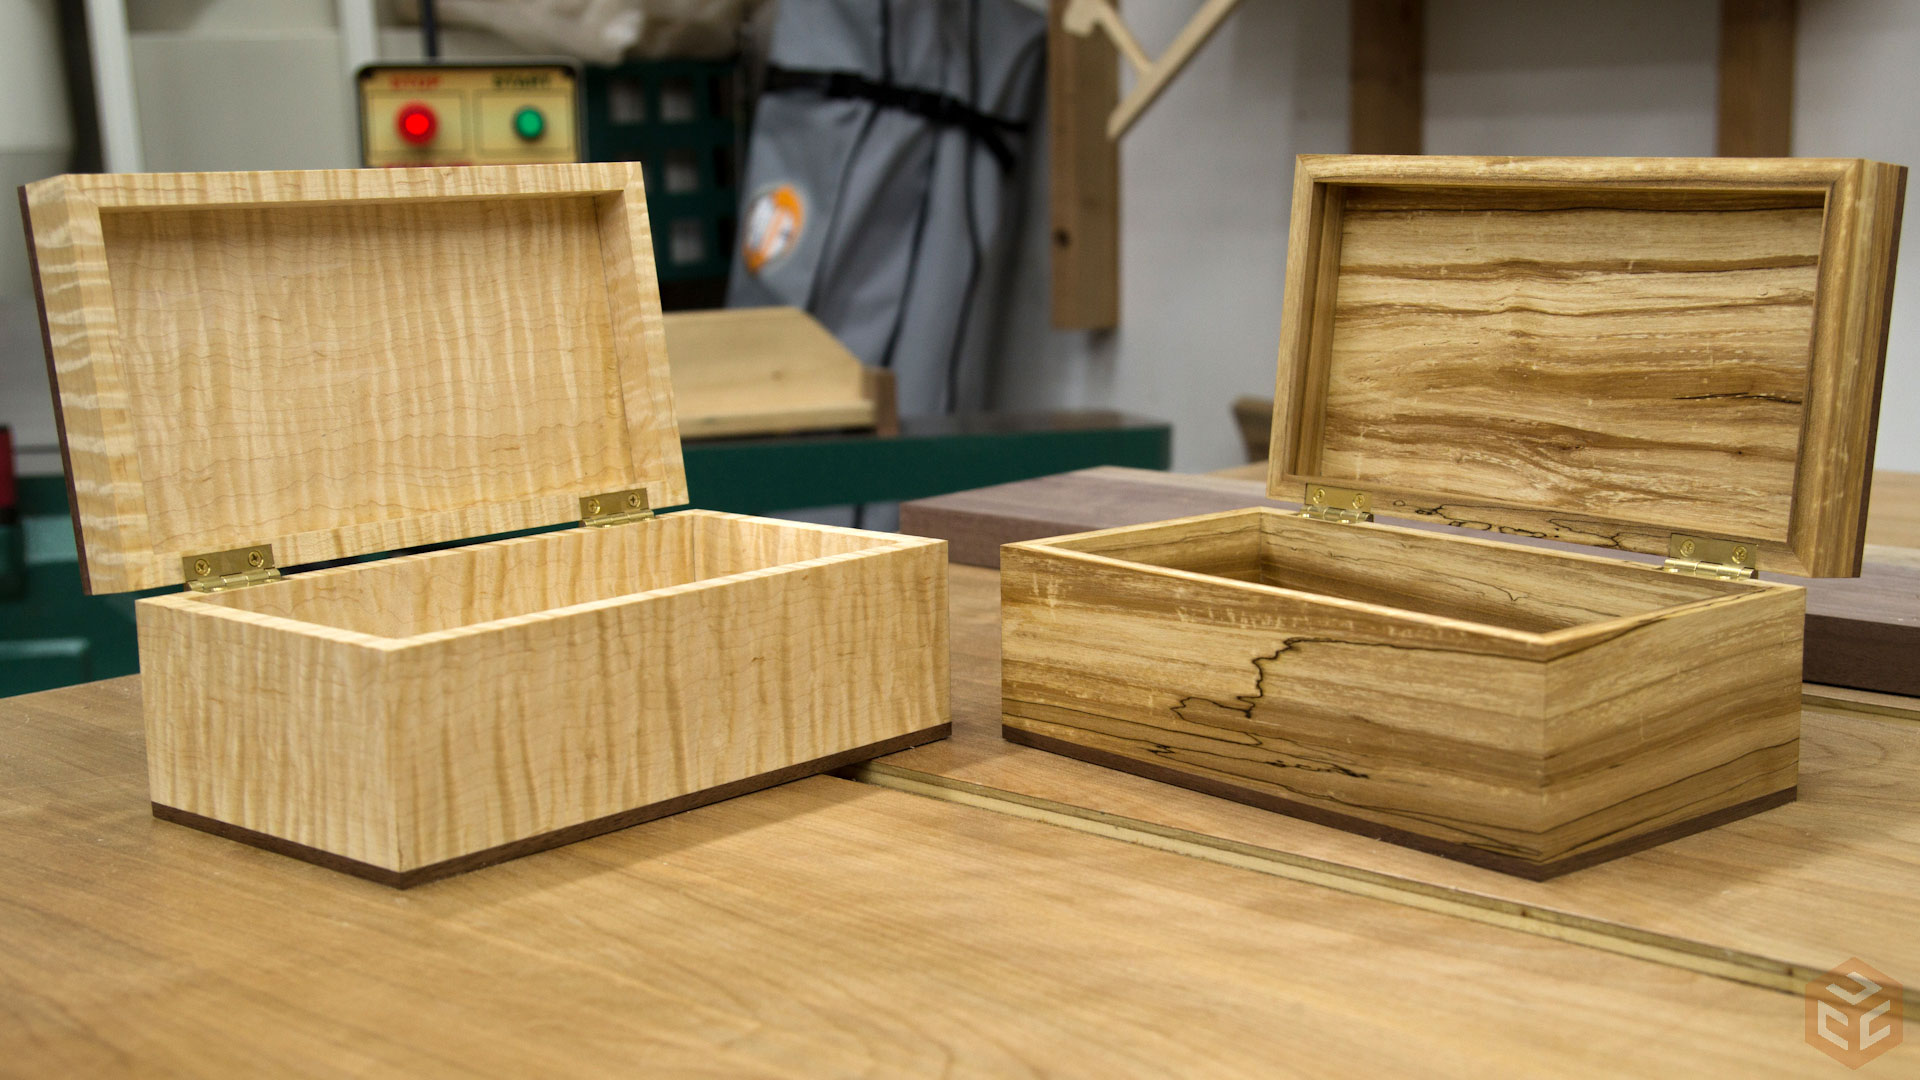 Wood Boxes Ivoiregion